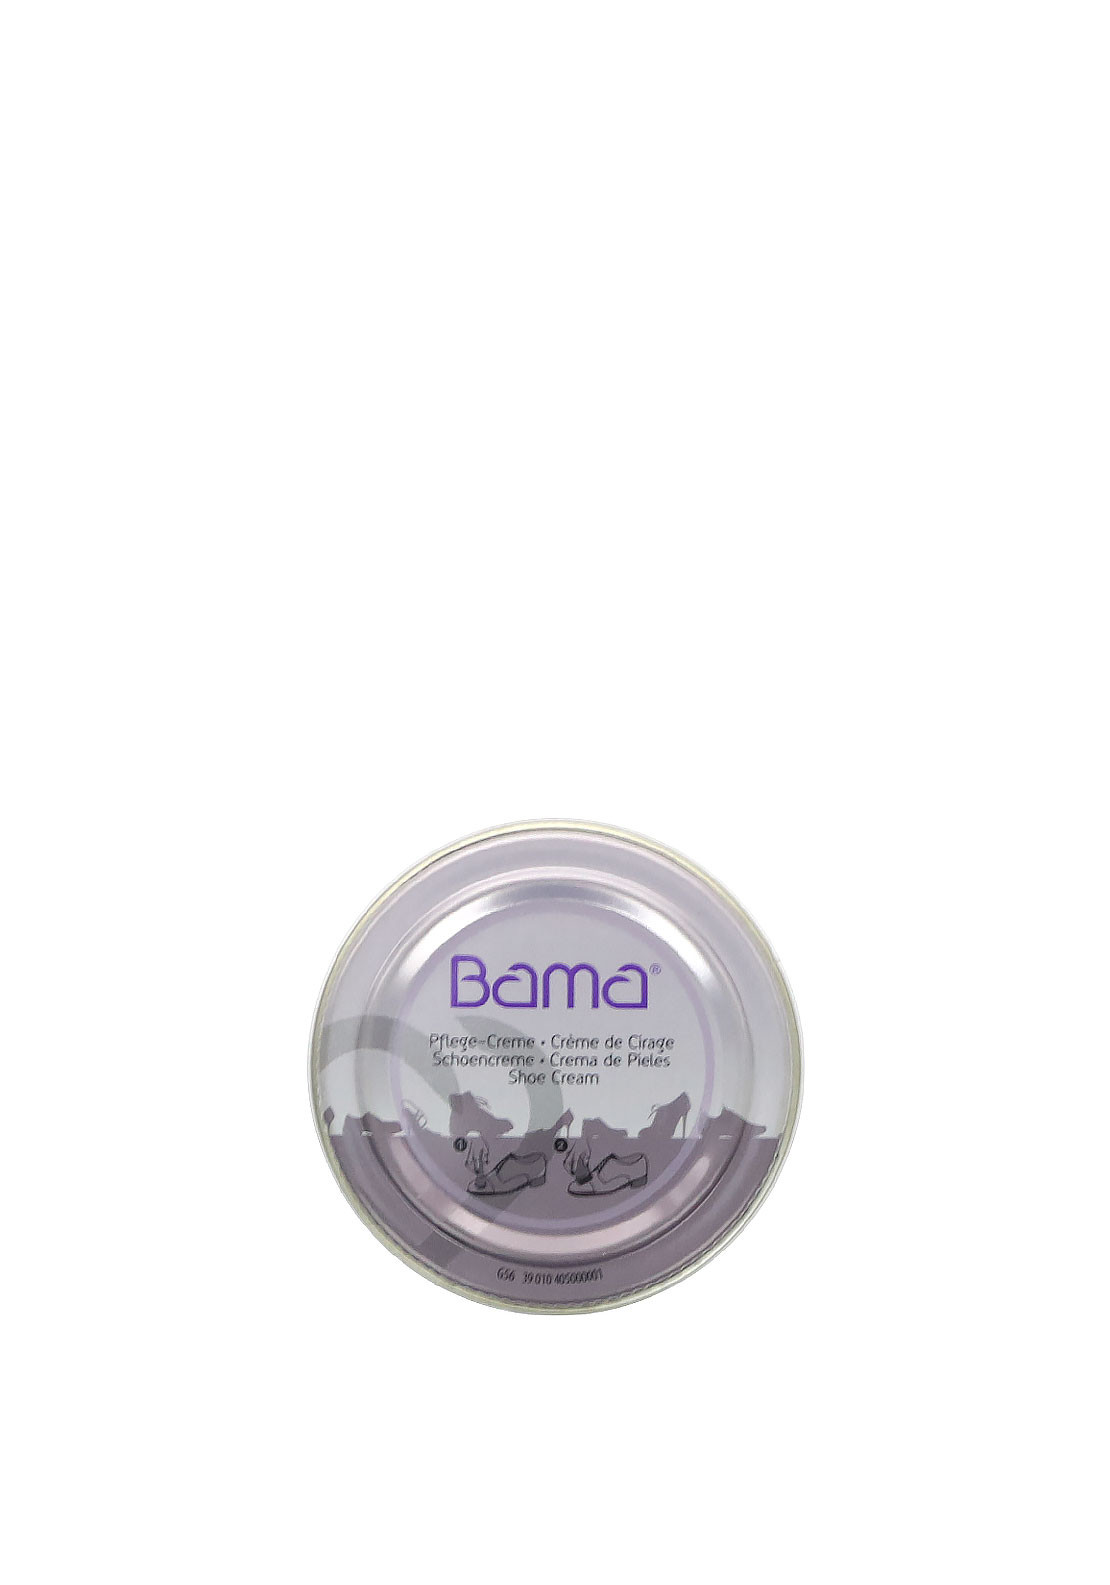 Bama Delicate Gel Cream, Brown